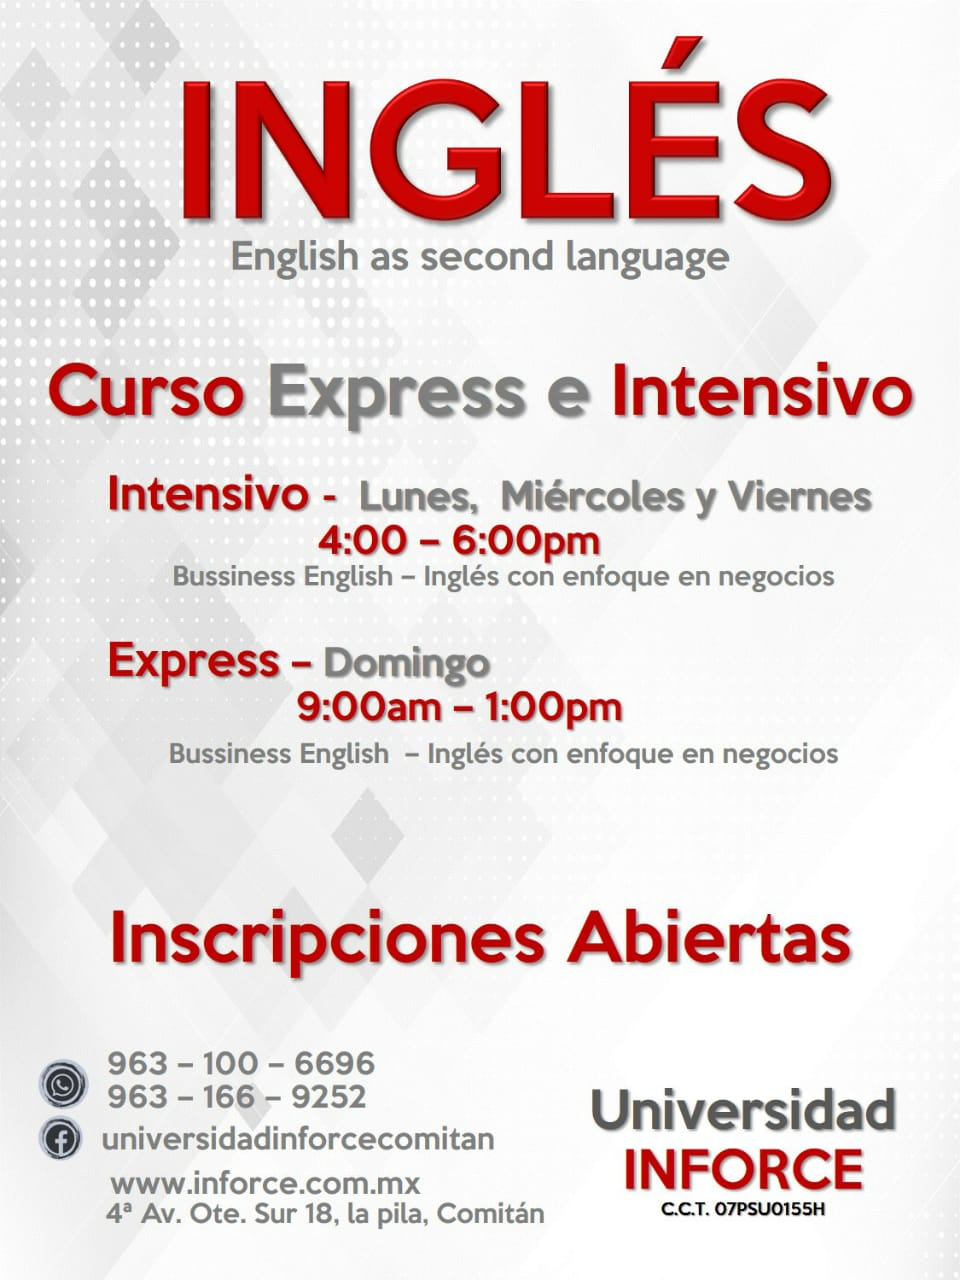 Ya estan abiertas a los cursos de Inglés Second Language